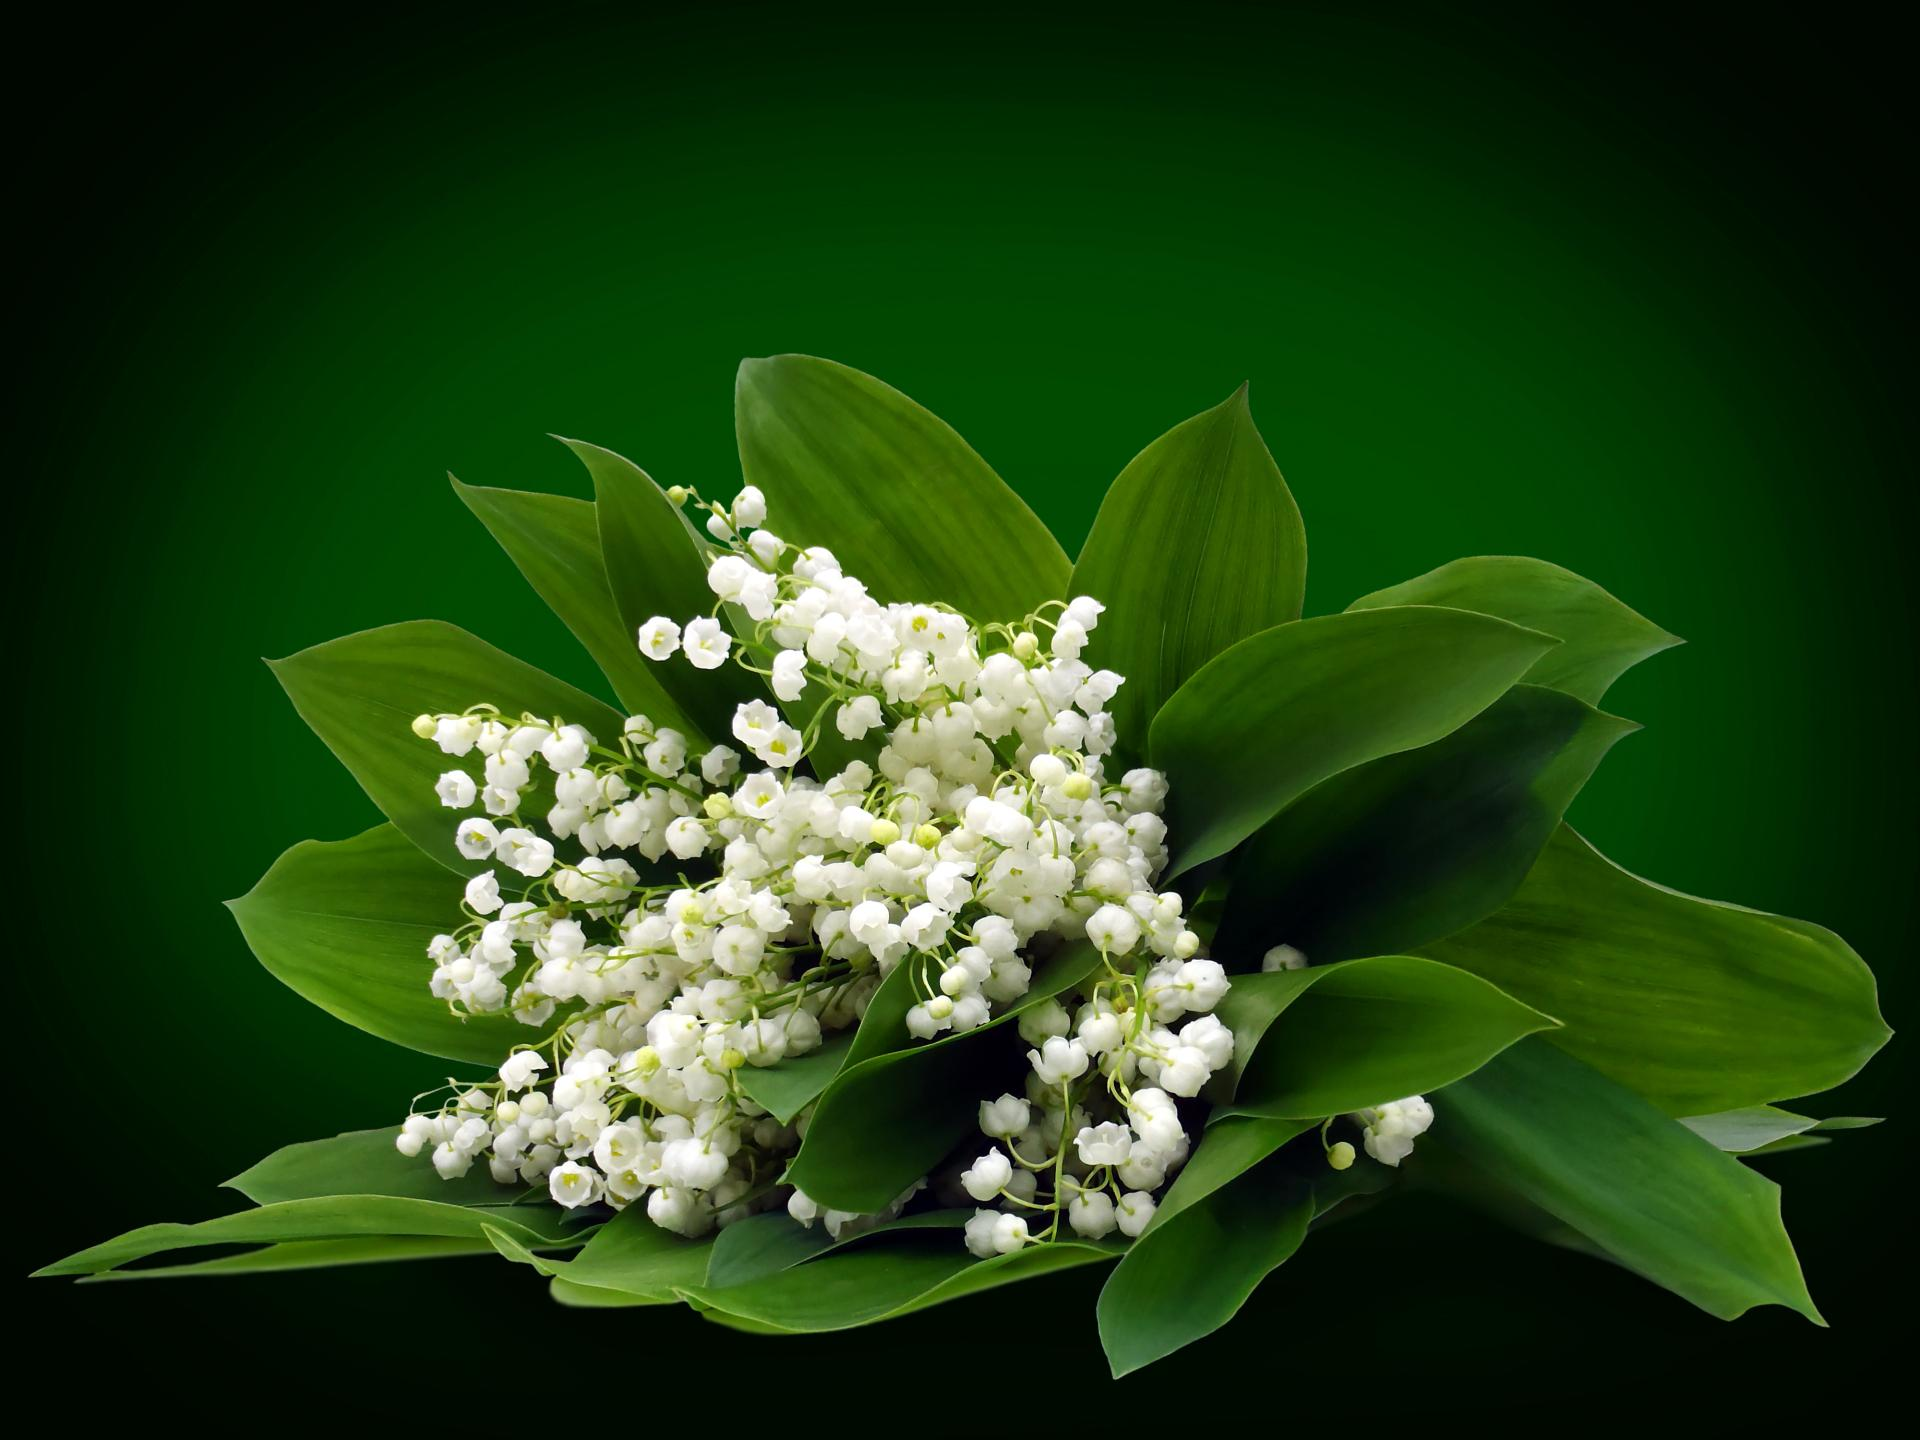 lily of the valley wallpaper hd download